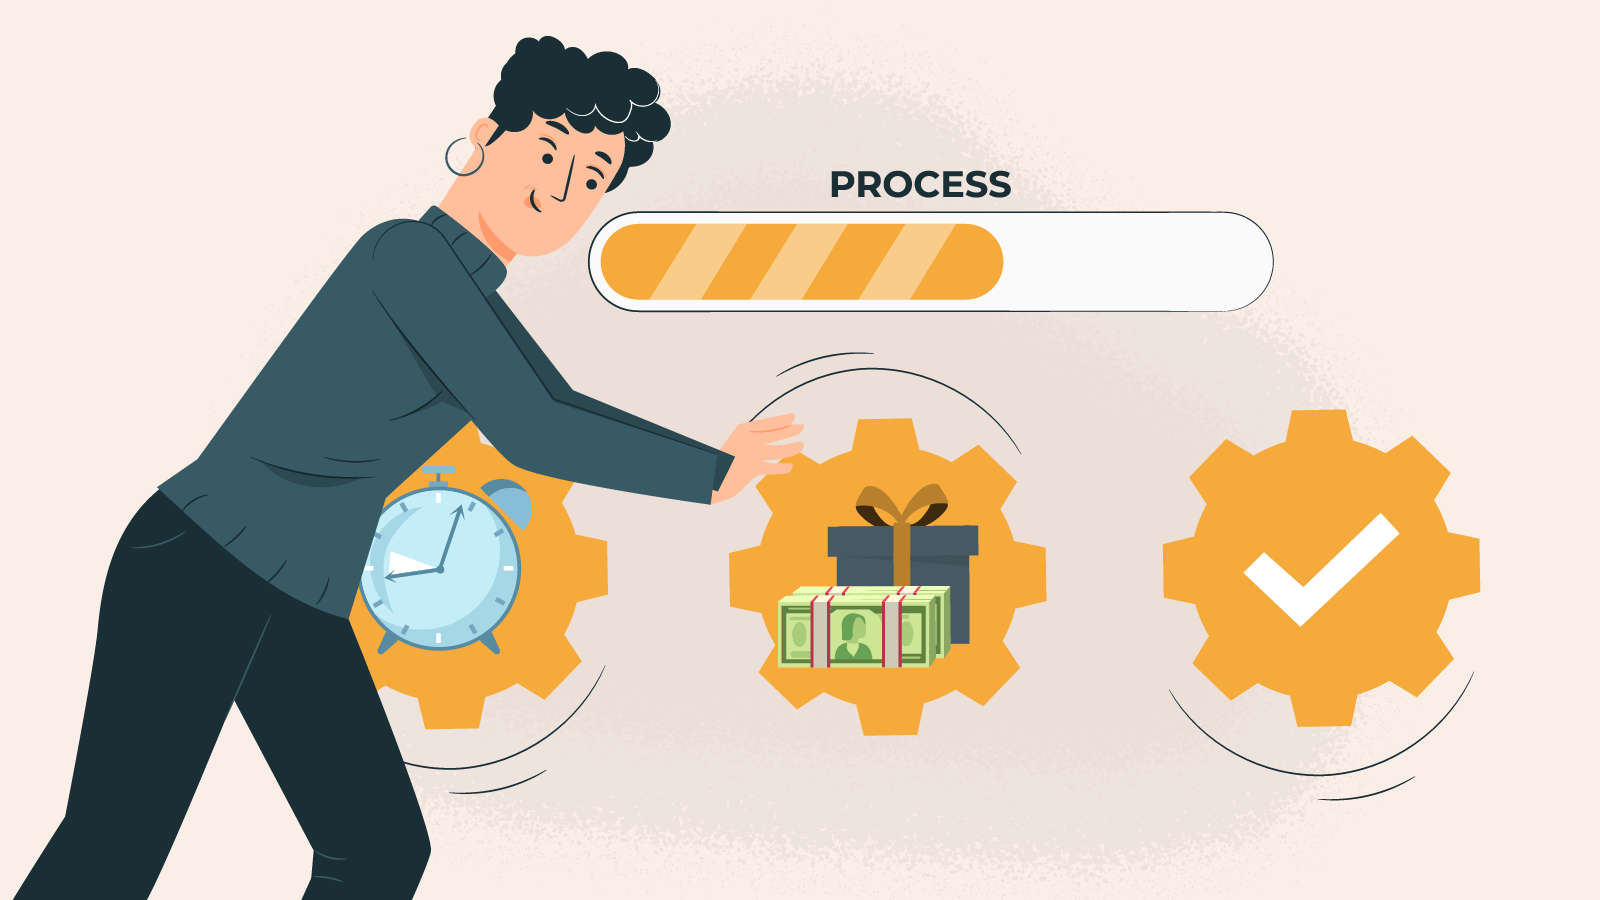 Step 2 Be ready for casino processing